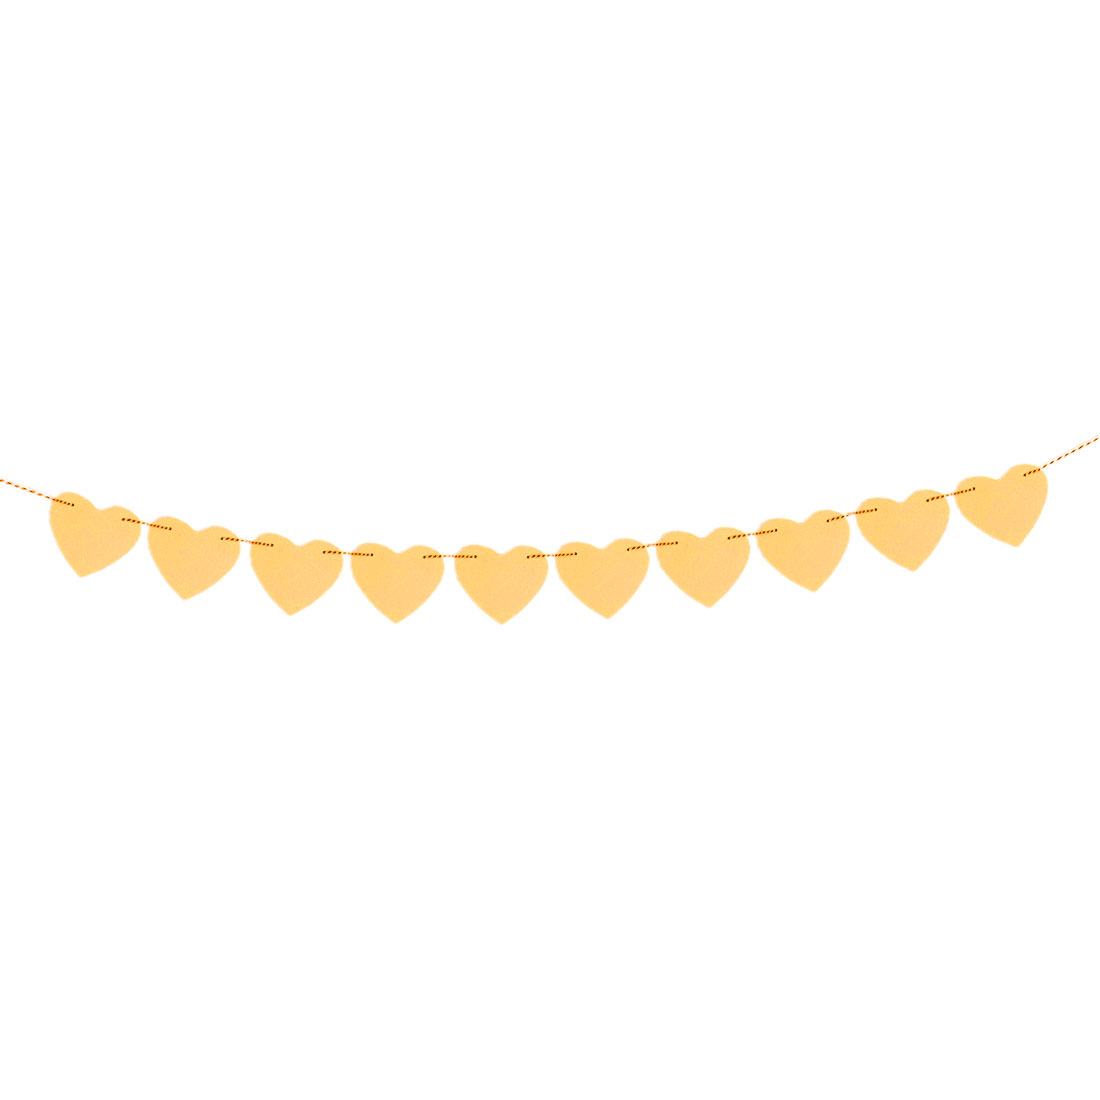 Paper Heart Shaped Party Decoration Photo Prop Bunting Banner Yellow 3 Meter Length